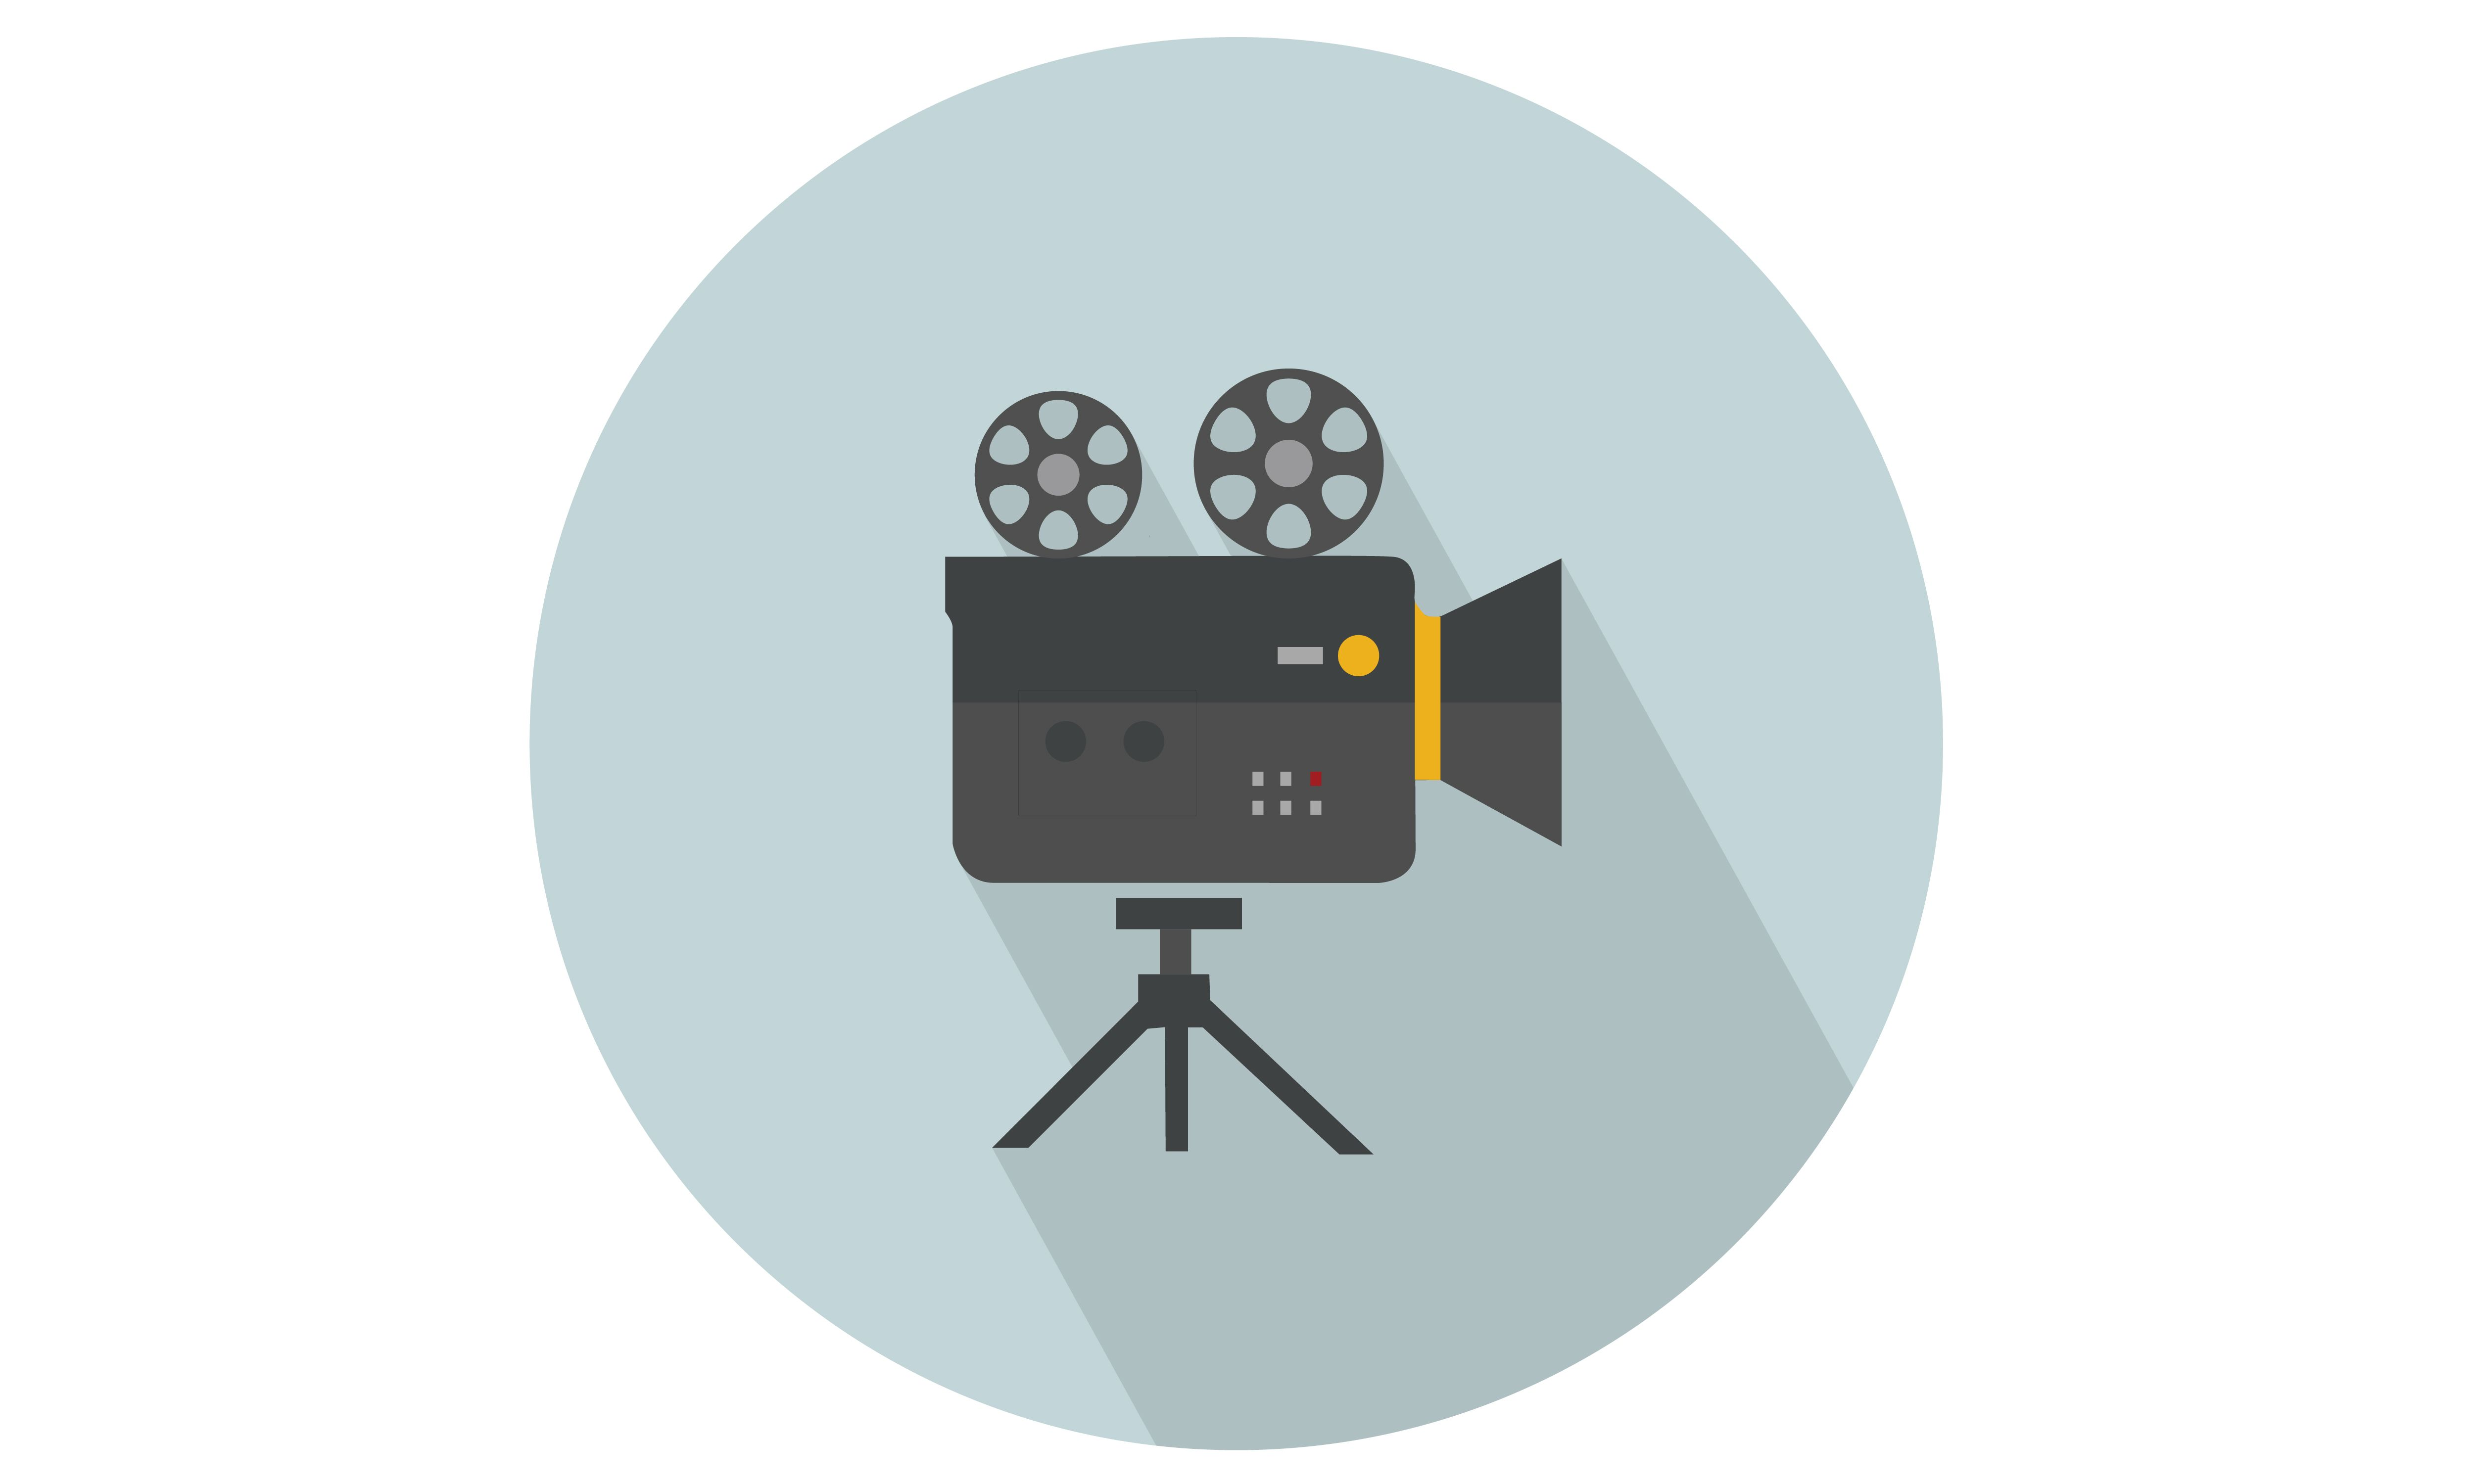 Recording Cinema Movie Camera With Reel And Stand Vector Illustration From Our Range Of Vector Icons Check Camera Illustration Movie Camera Cinema Movies